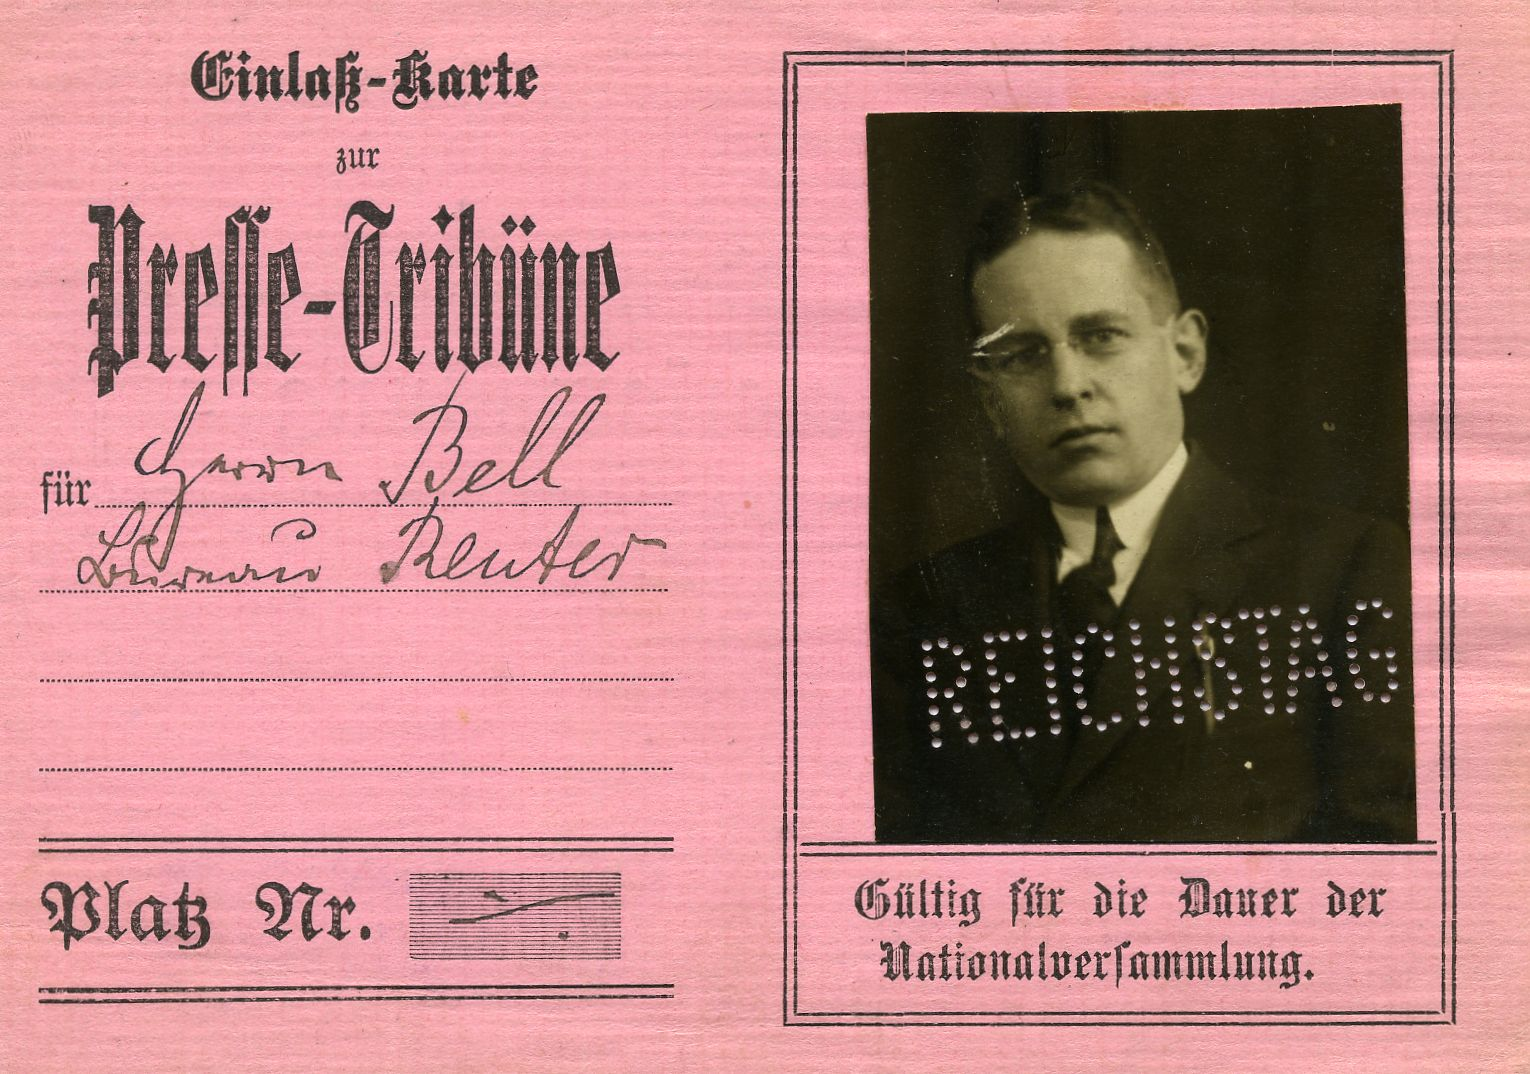 Pink press card with German text and a photograph of Winthrop Pickard Bell.